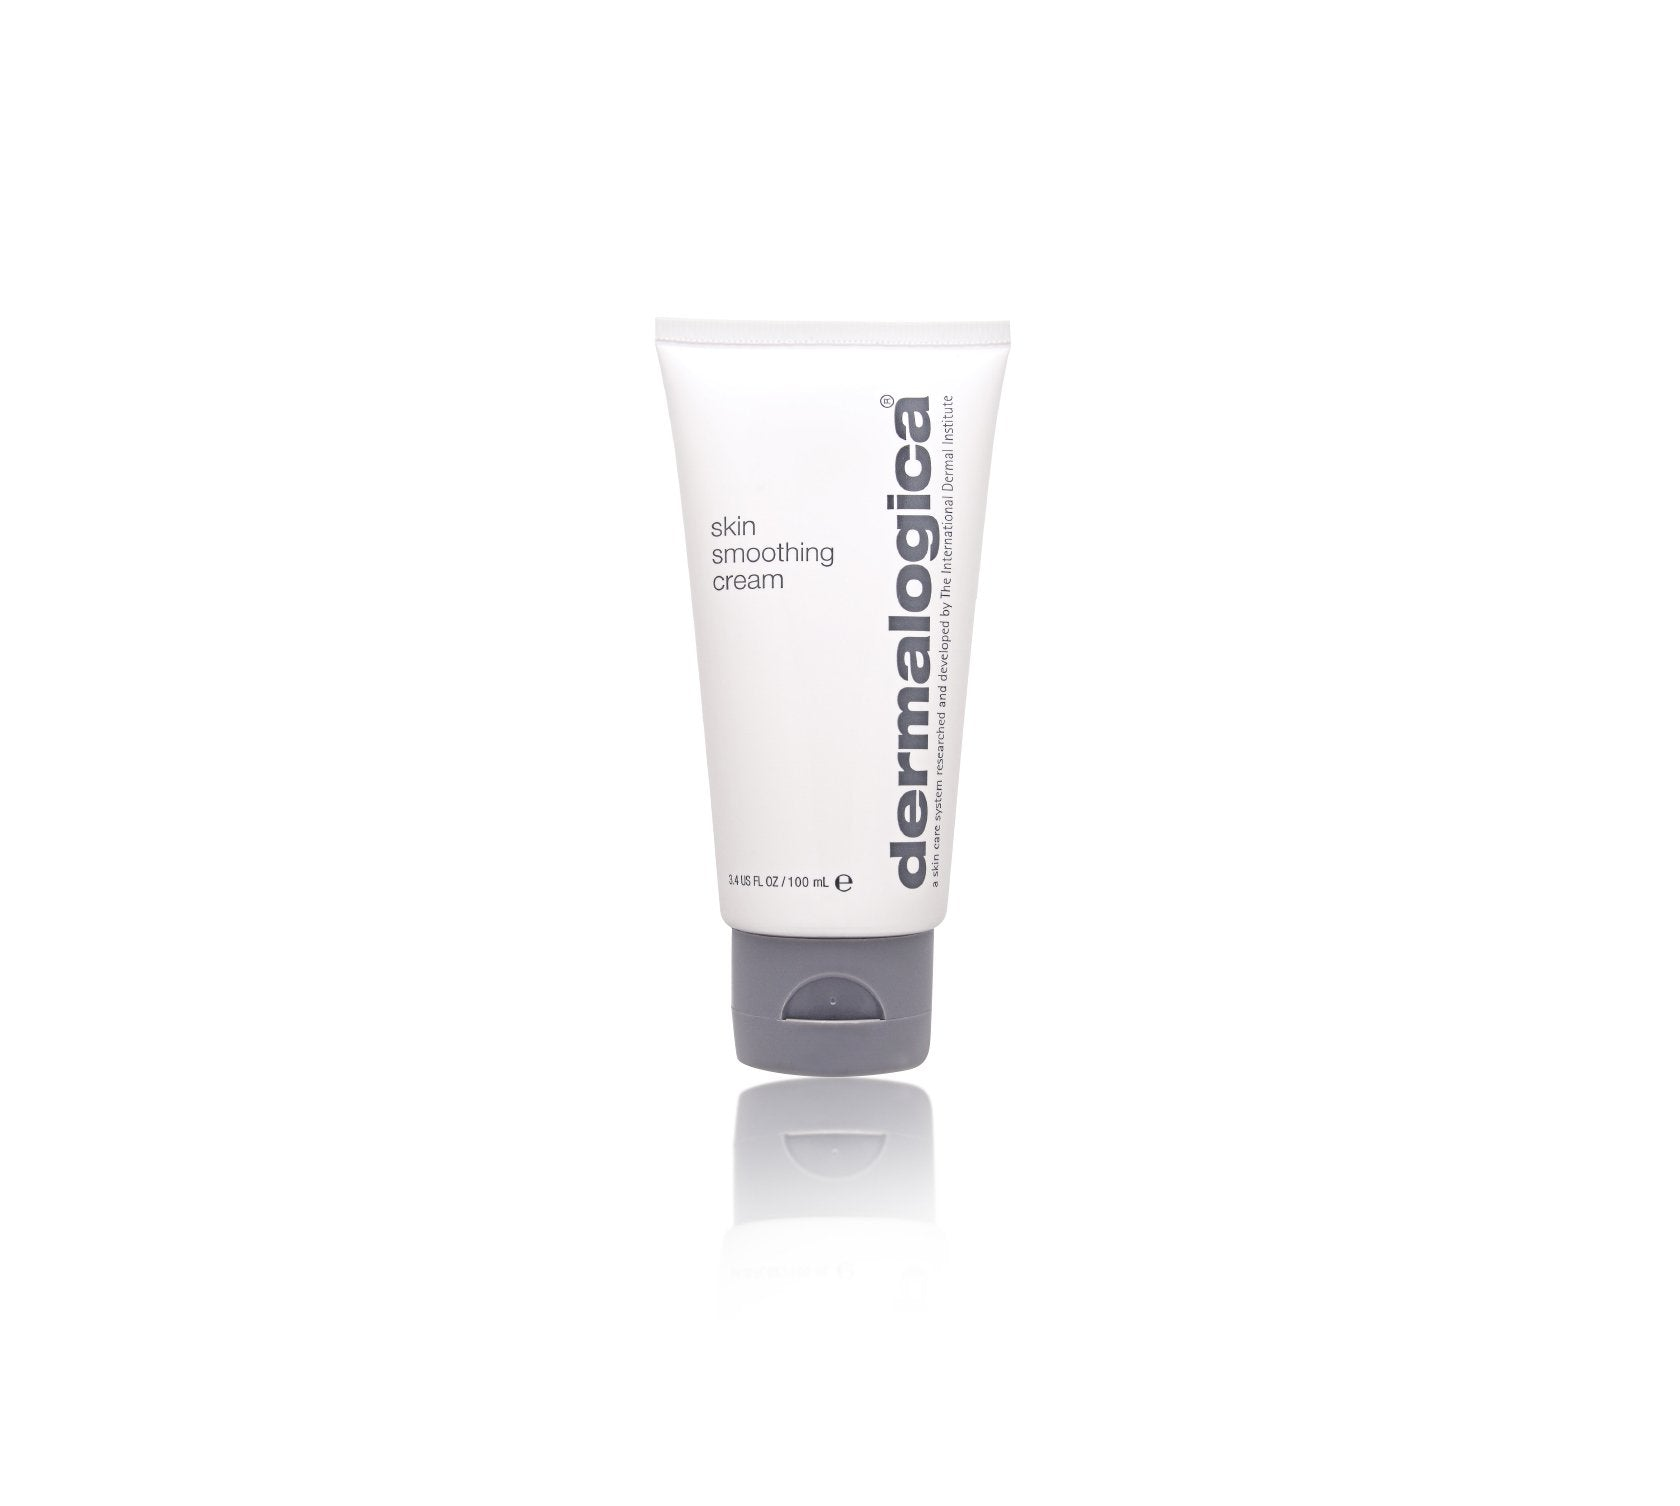 skin-smoothing-cream